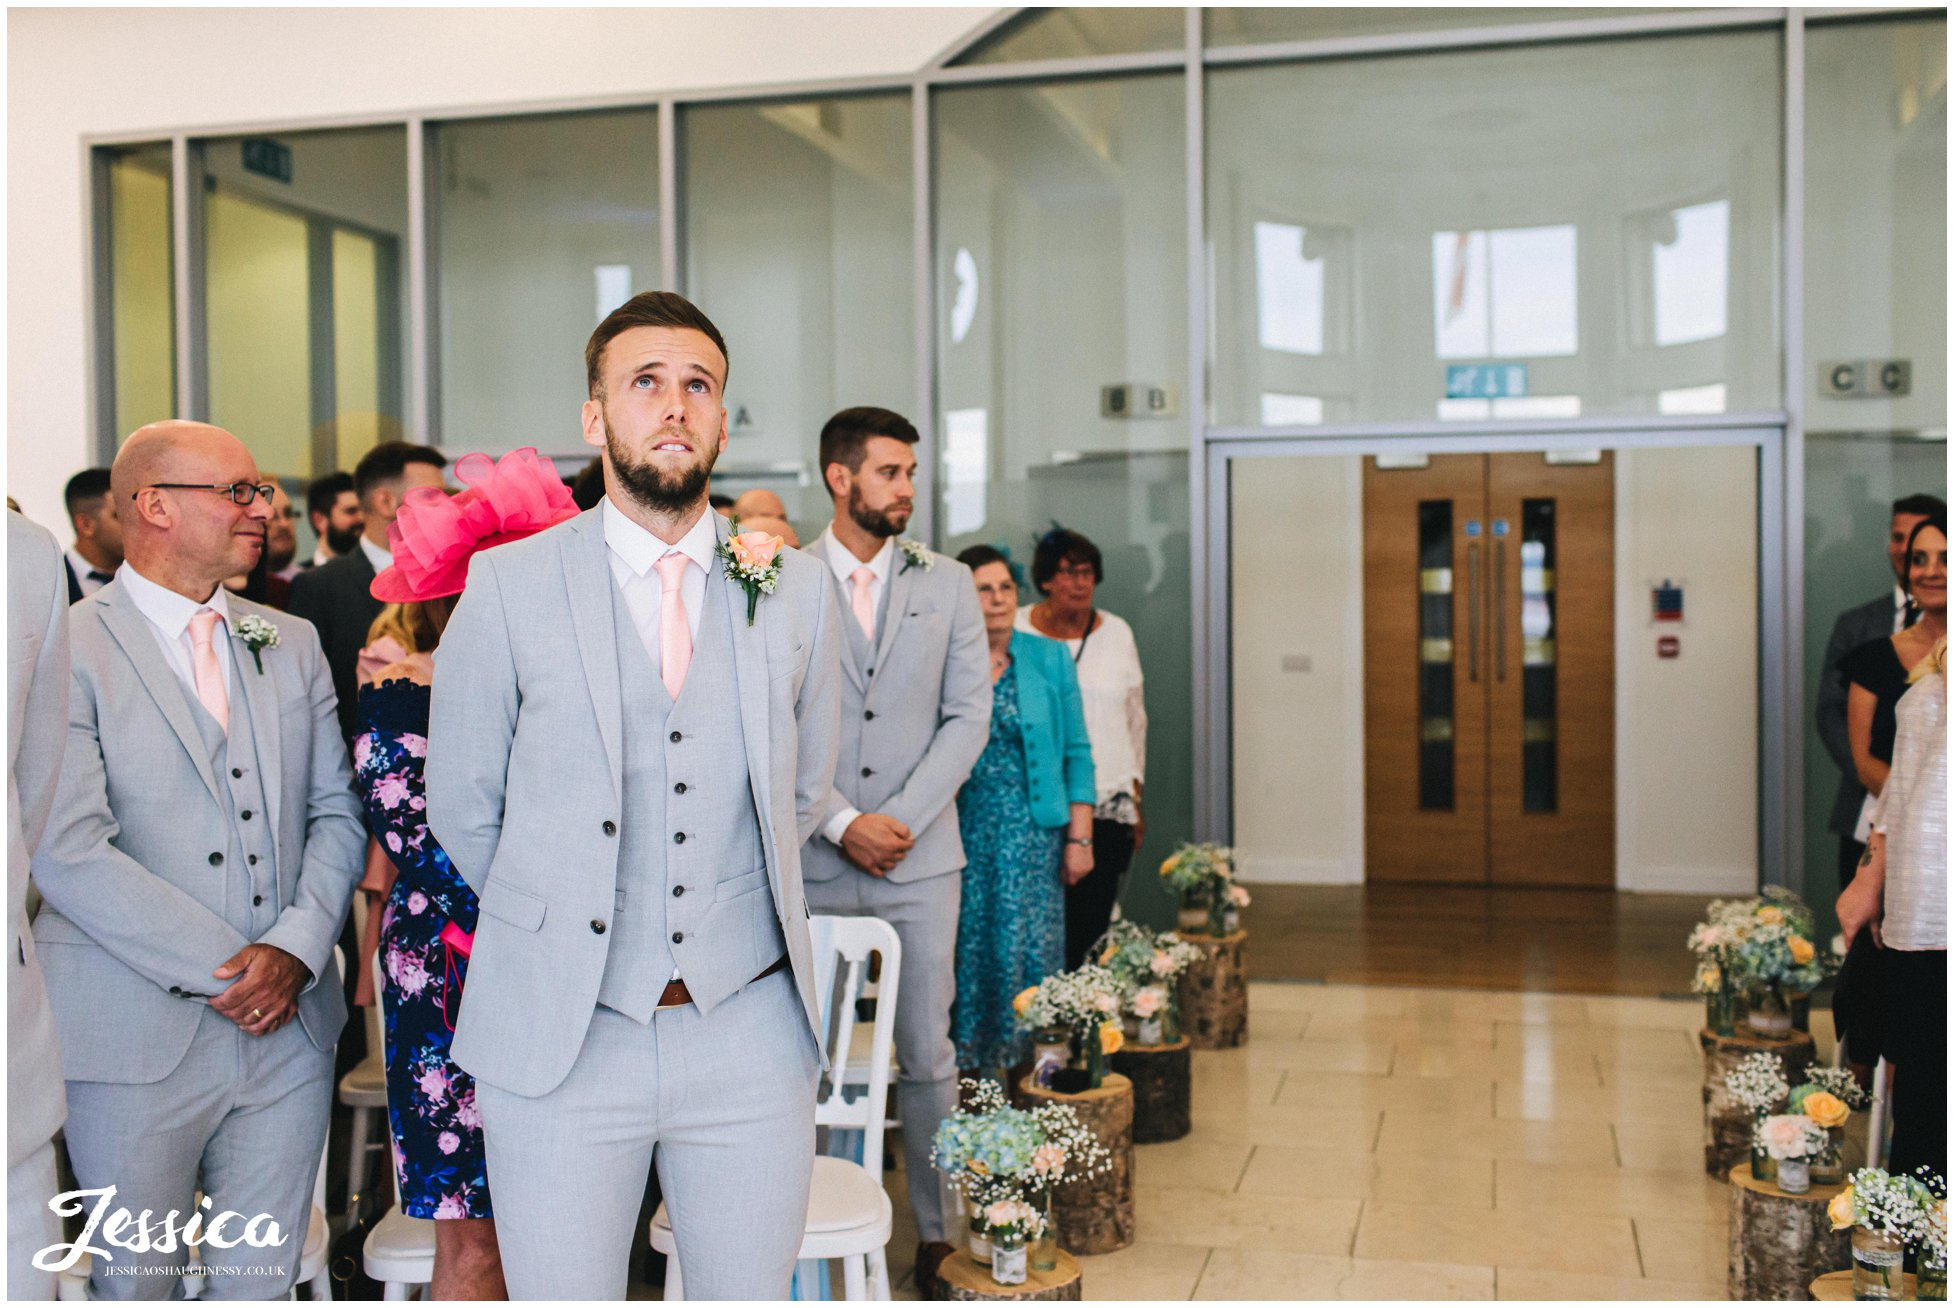 the groom looks emotional as he waits for his bride